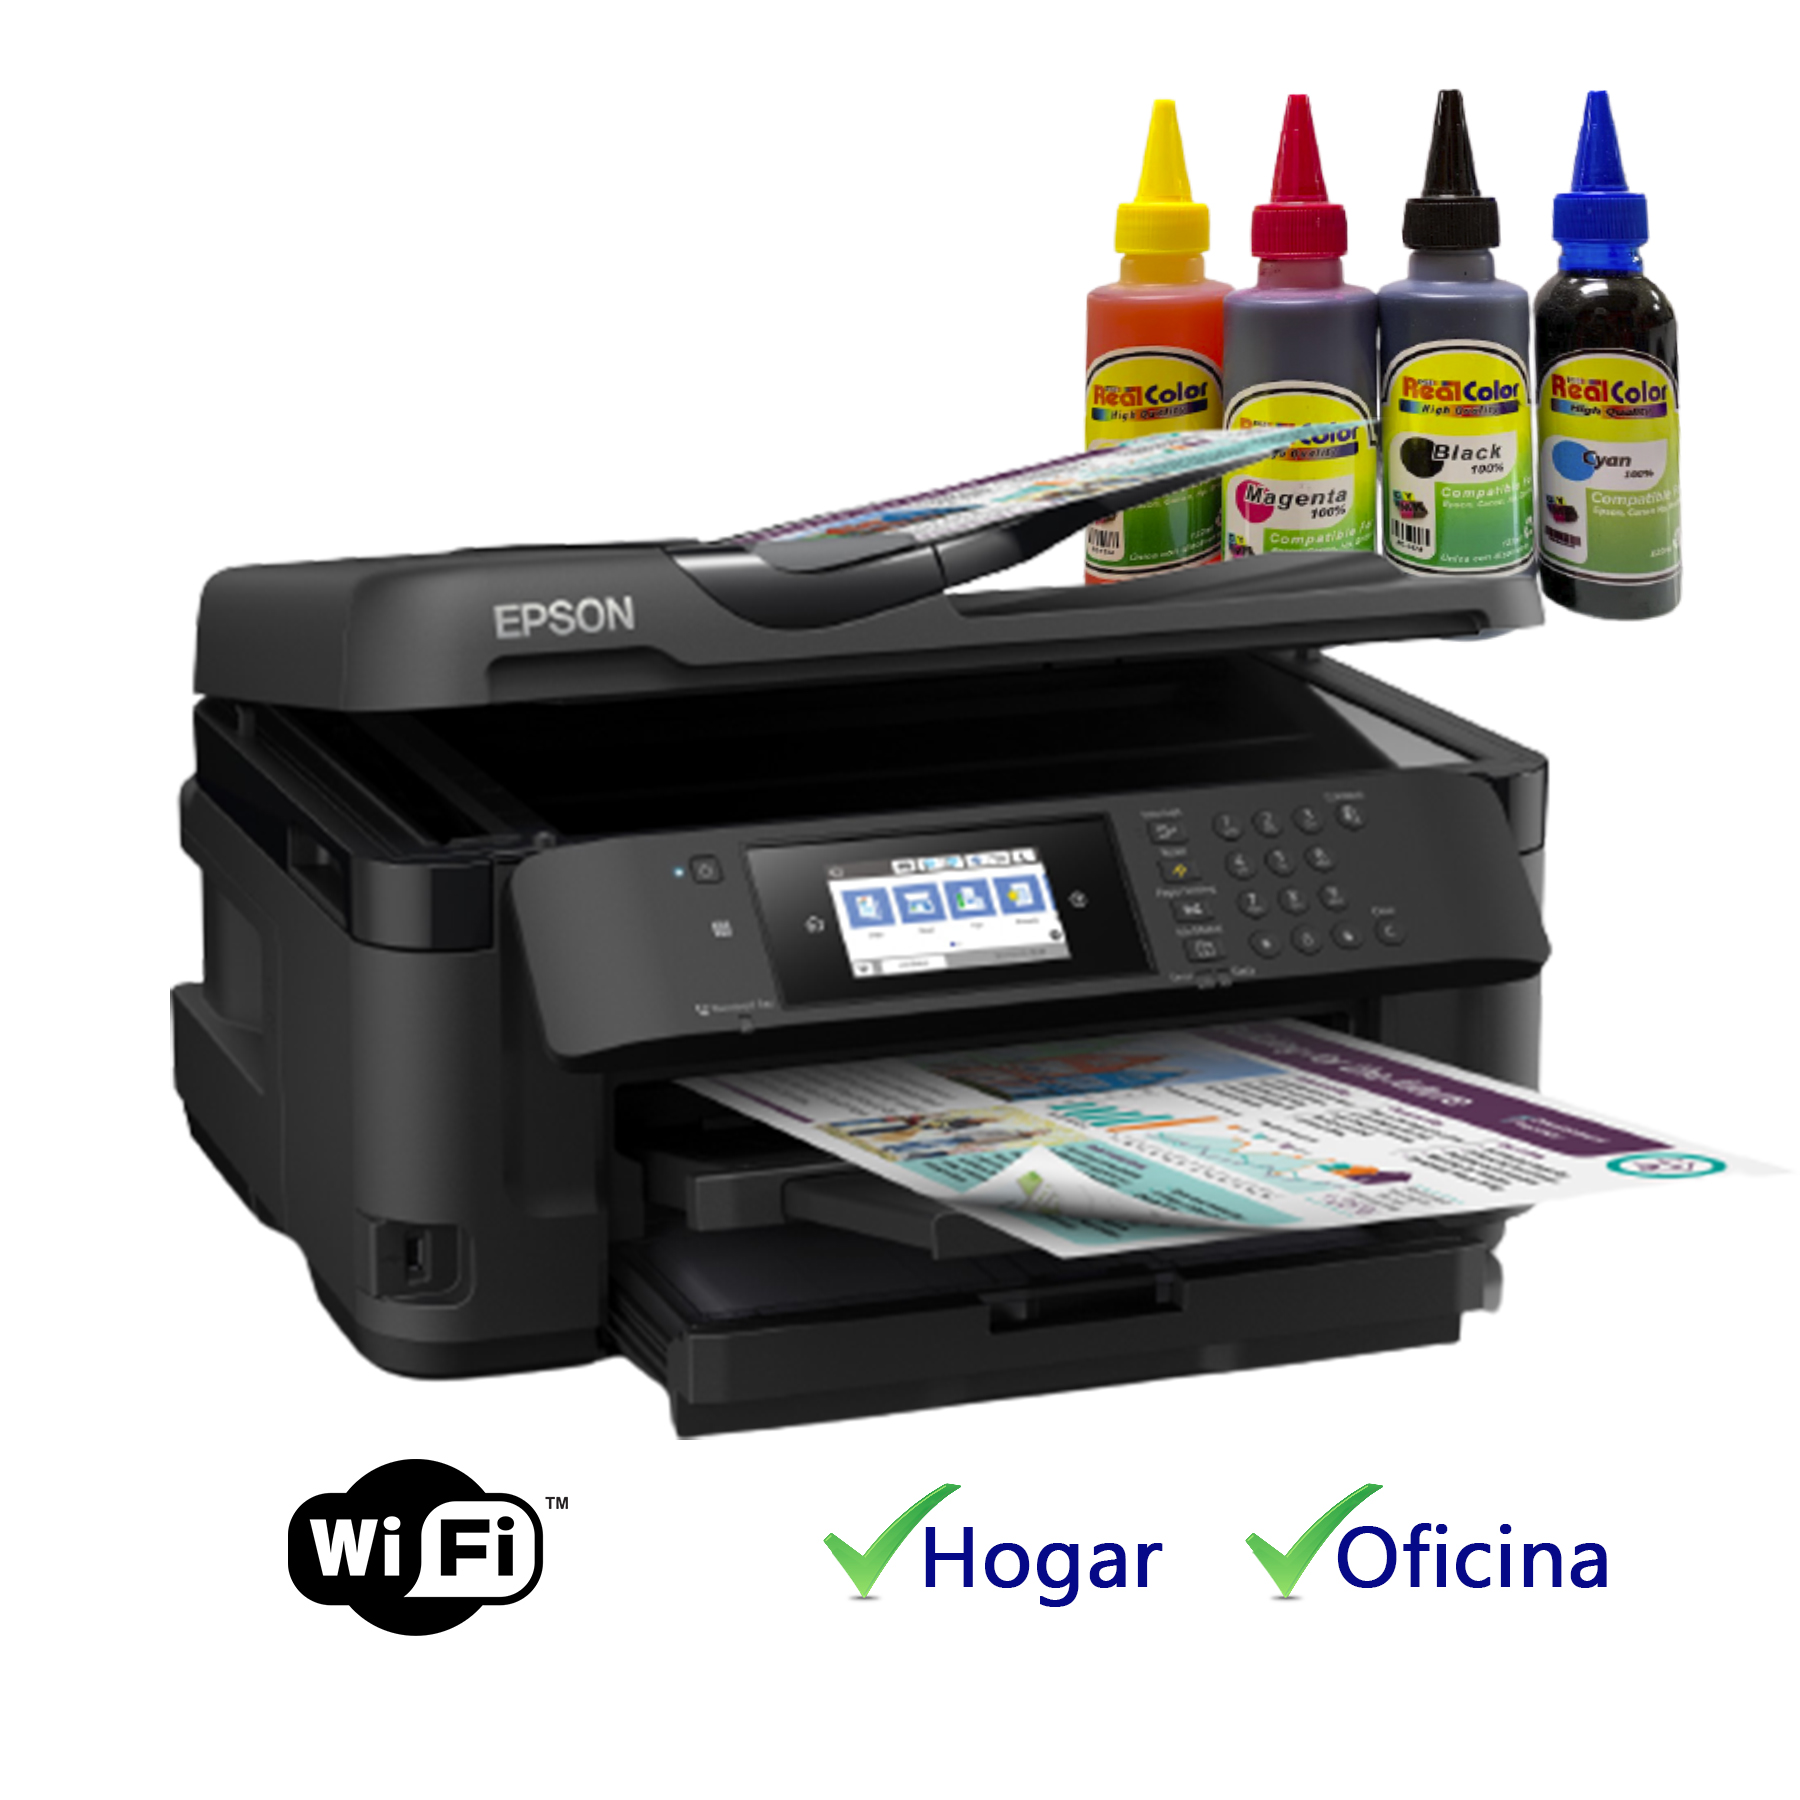 PRINTER CANON MG2410 + SISTEMA TINTA REAL COLOR